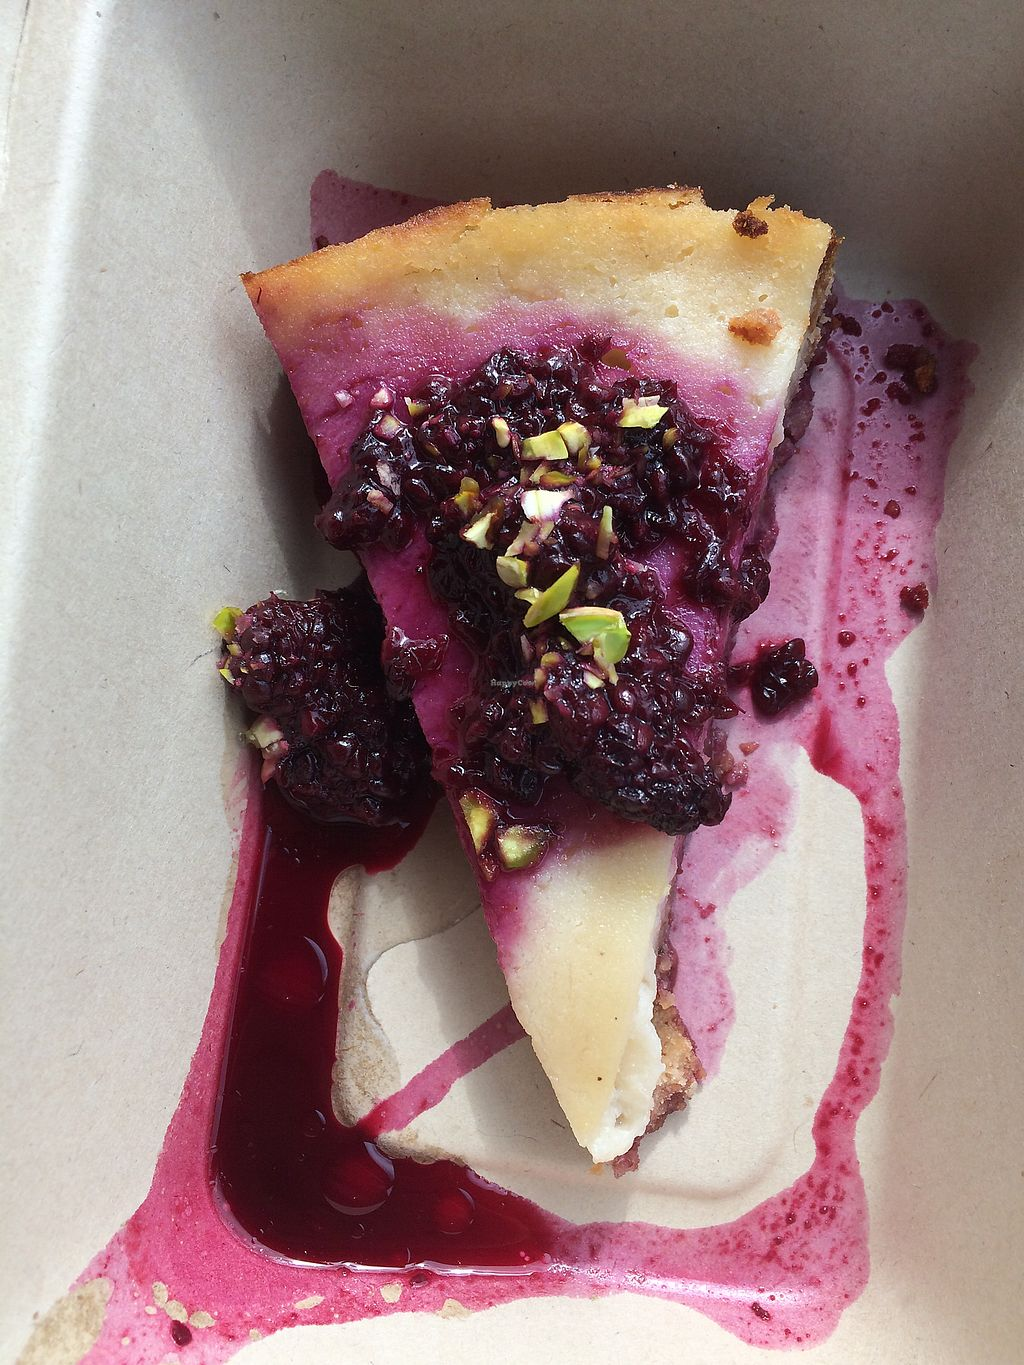 """Photo of Cardamomo Cucina Vegana  by <a href=""""/members/profile/veg%C3%A9line"""">vegéline</a> <br/>Blackberry cheesecake, glutenfree <br/> August 3, 2017  - <a href='/contact/abuse/image/88093/288409'>Report</a>"""